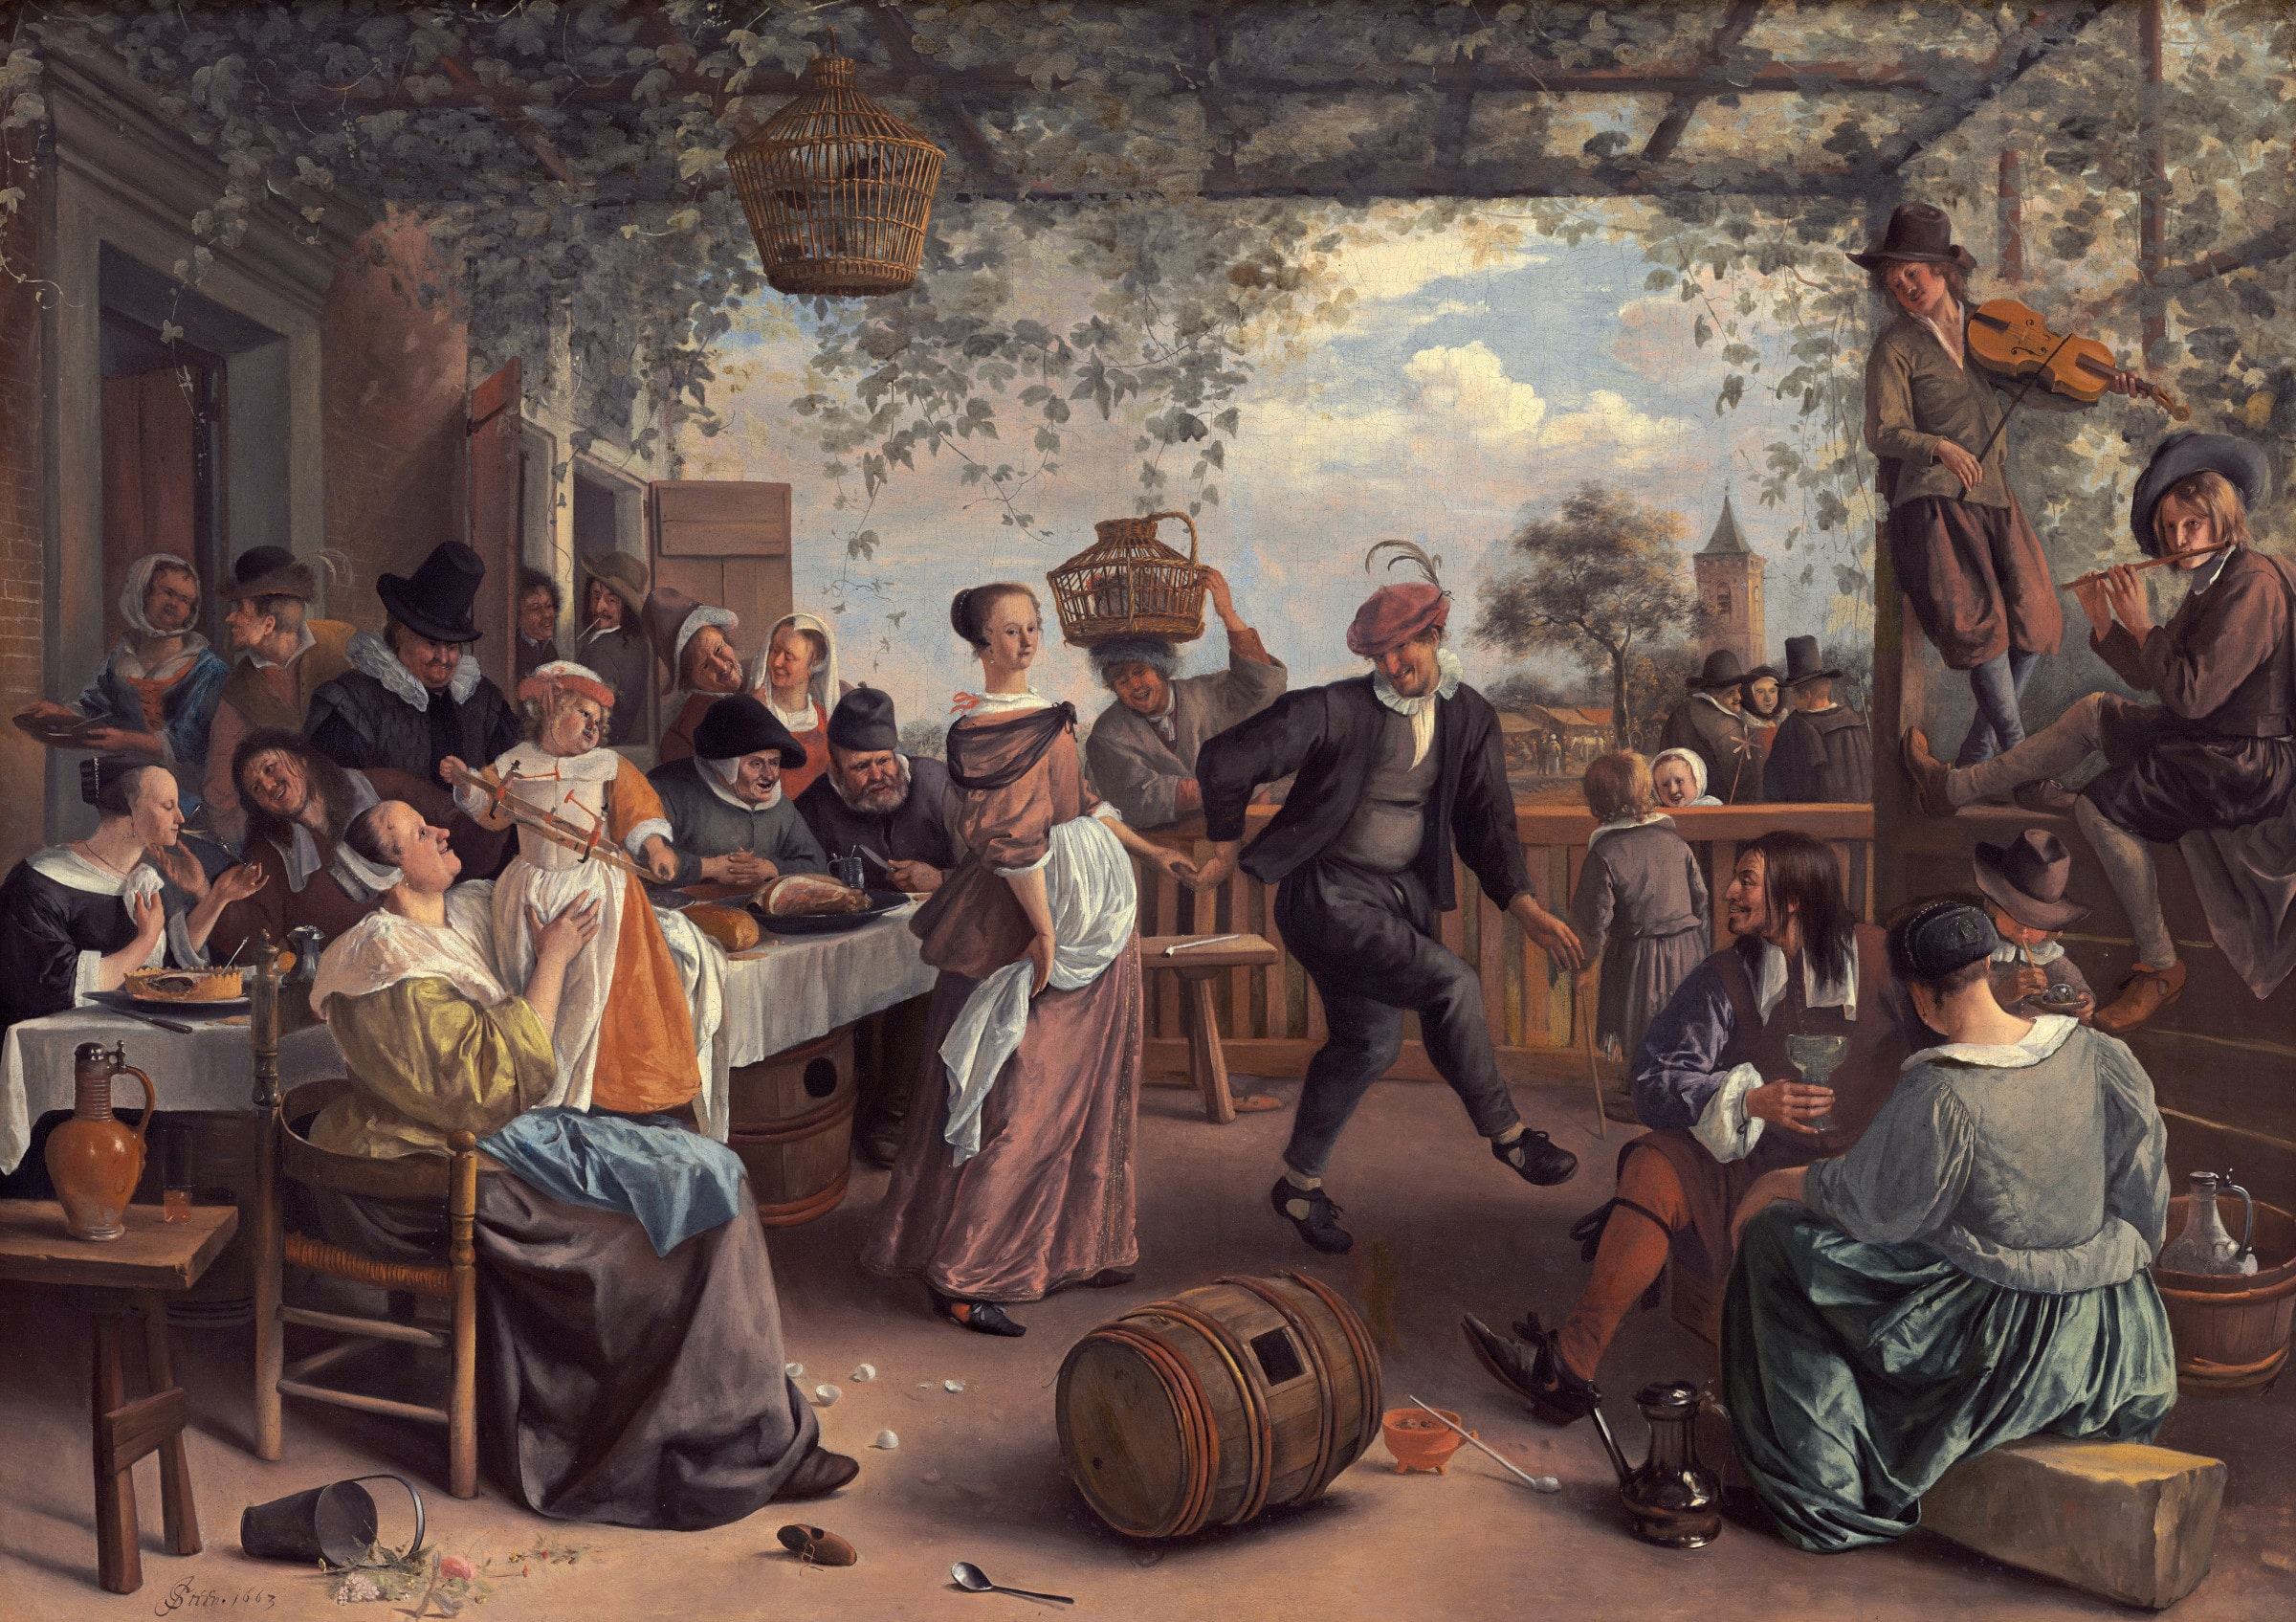 The Dancing Couple, Jan Steen (1663) - La danza dell'uovo dei giovani fidanzati